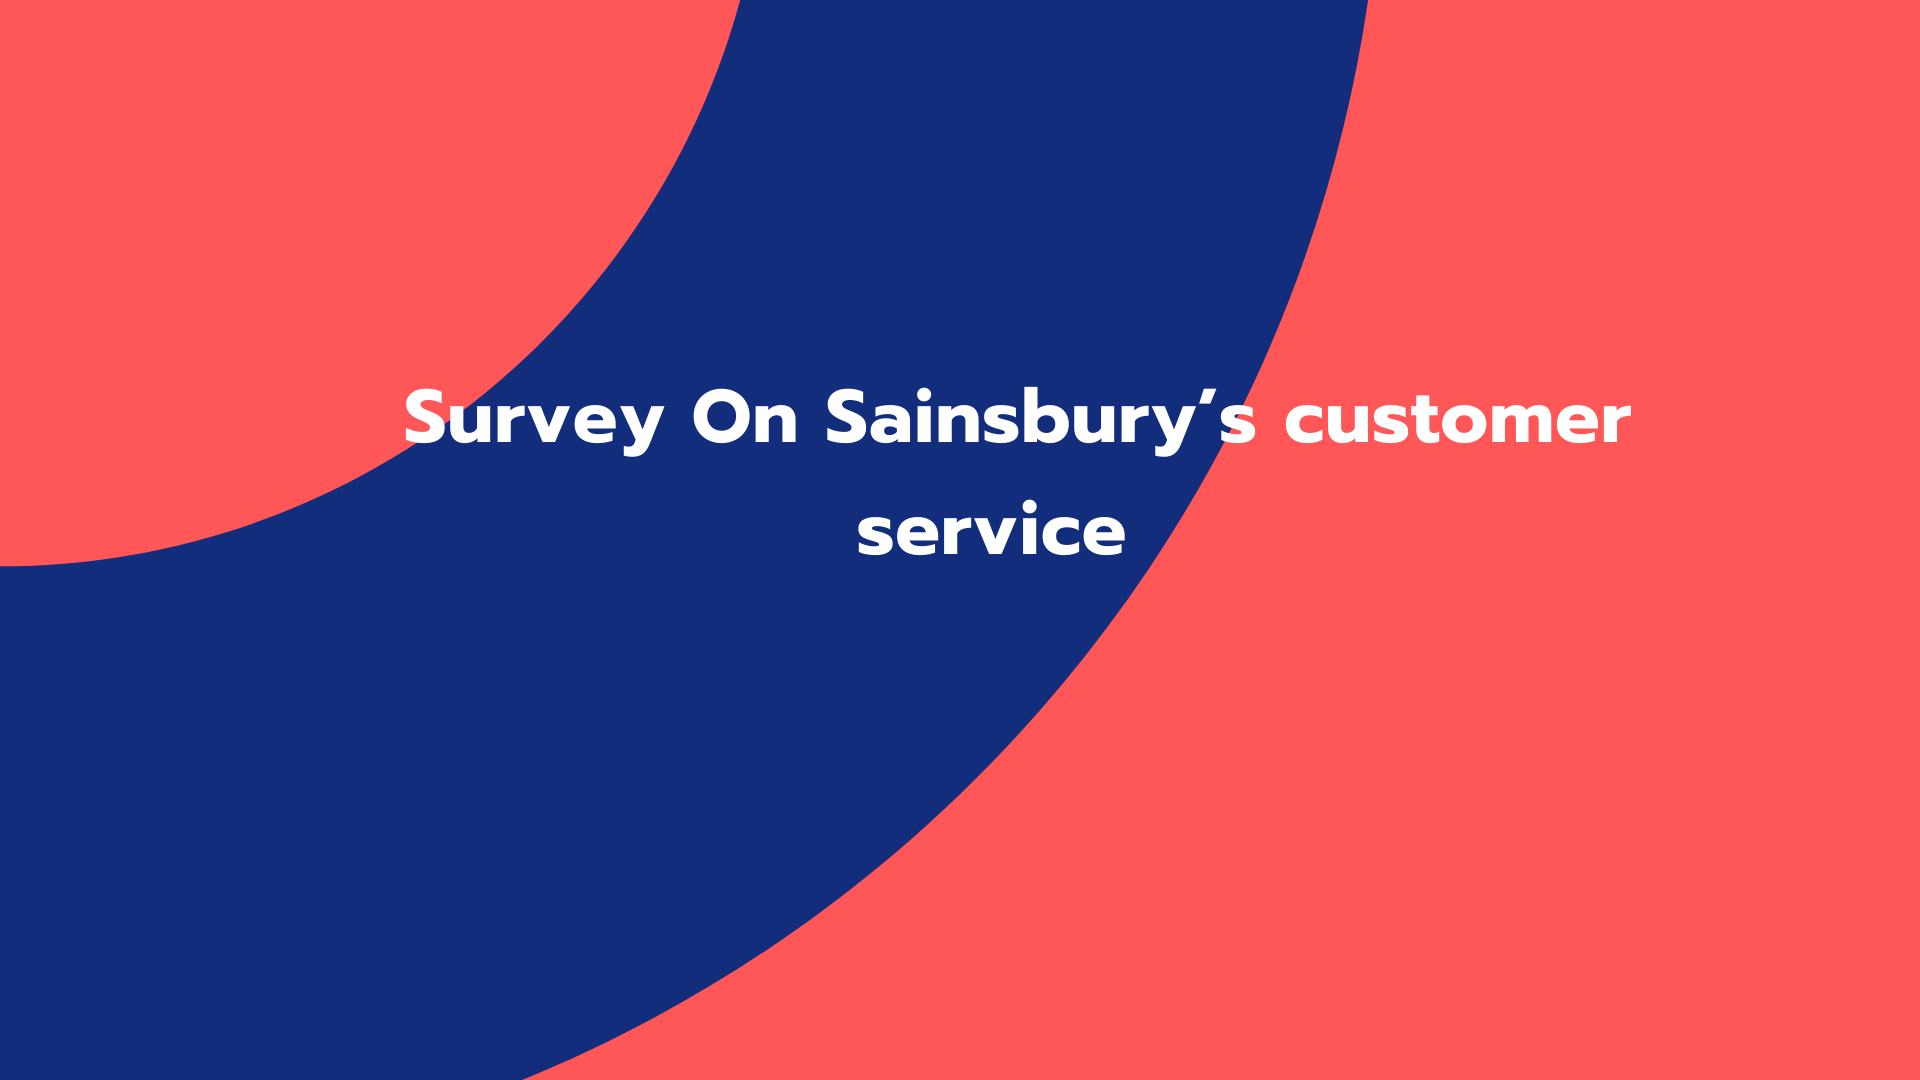 Survey On Sainsbury's customer service